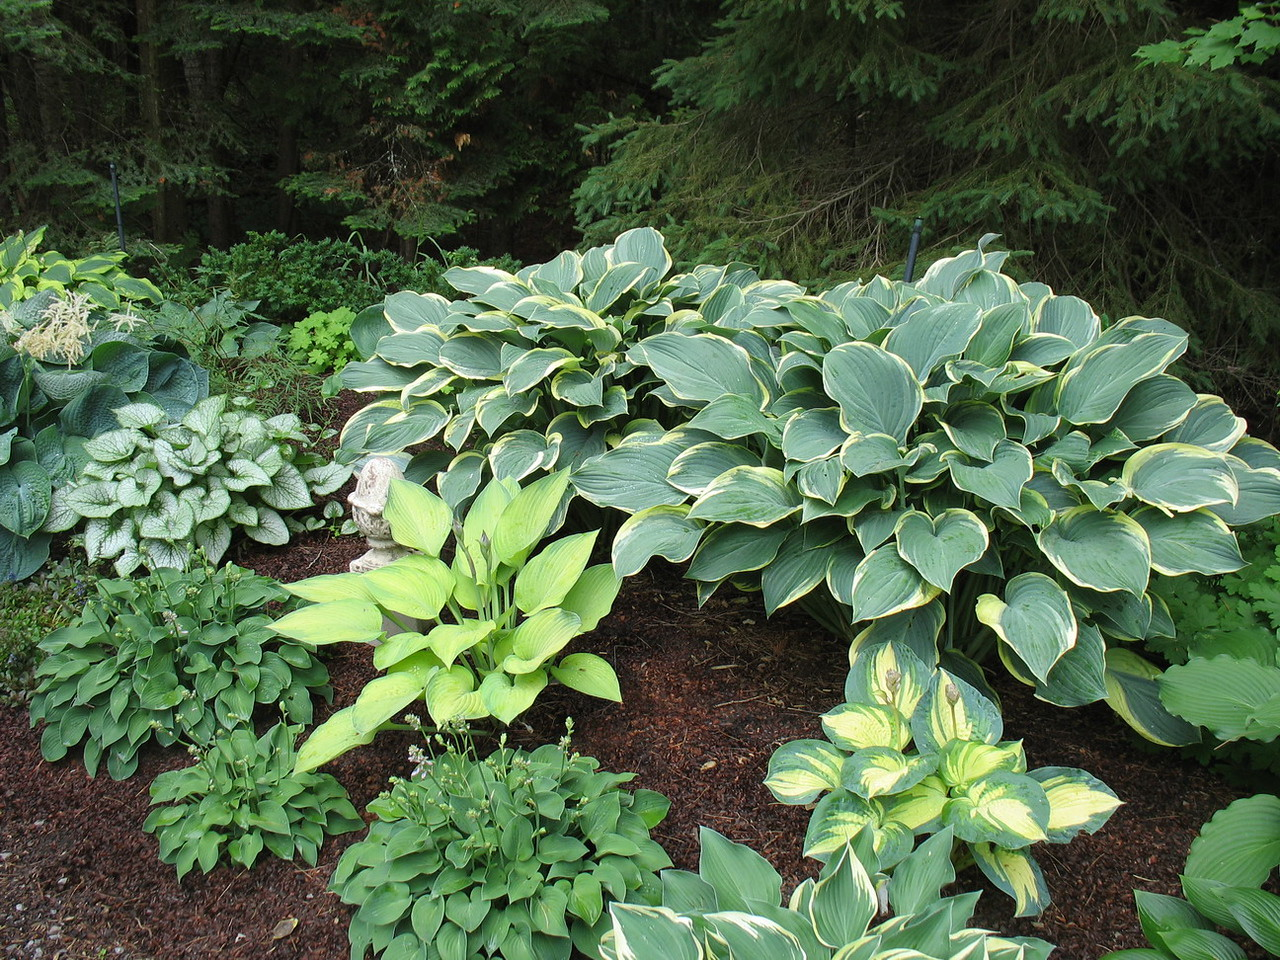 Nice mature hostas. I'll let Sandy add a comment if she wishes to identify them.